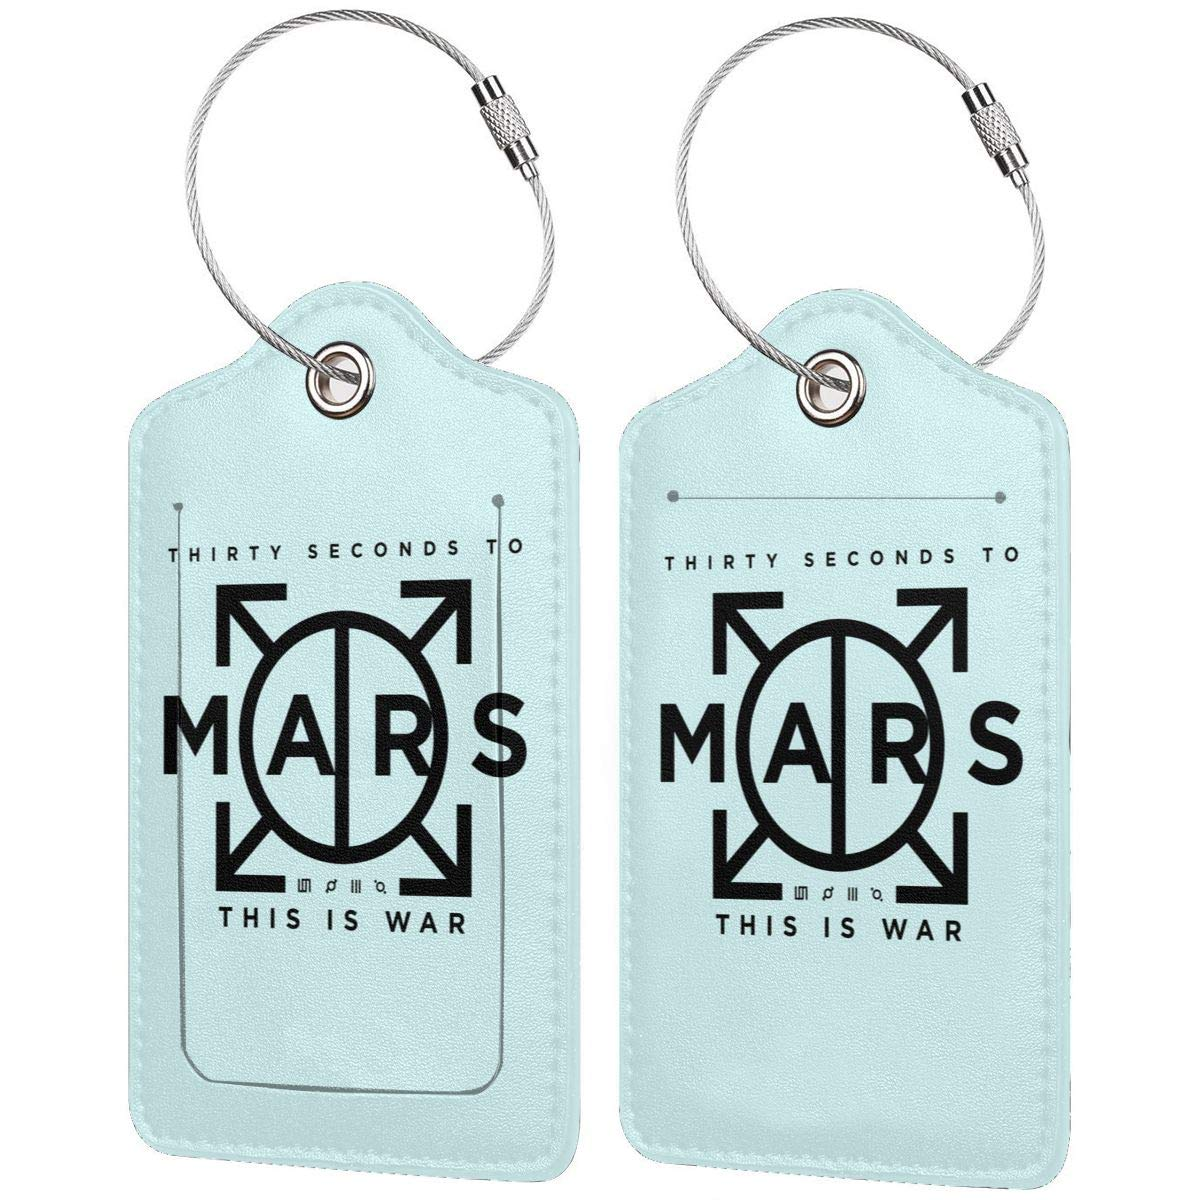 30 Seconds To Mars Leather Luggage Tag Travel ID Label For Baggage Suitcase